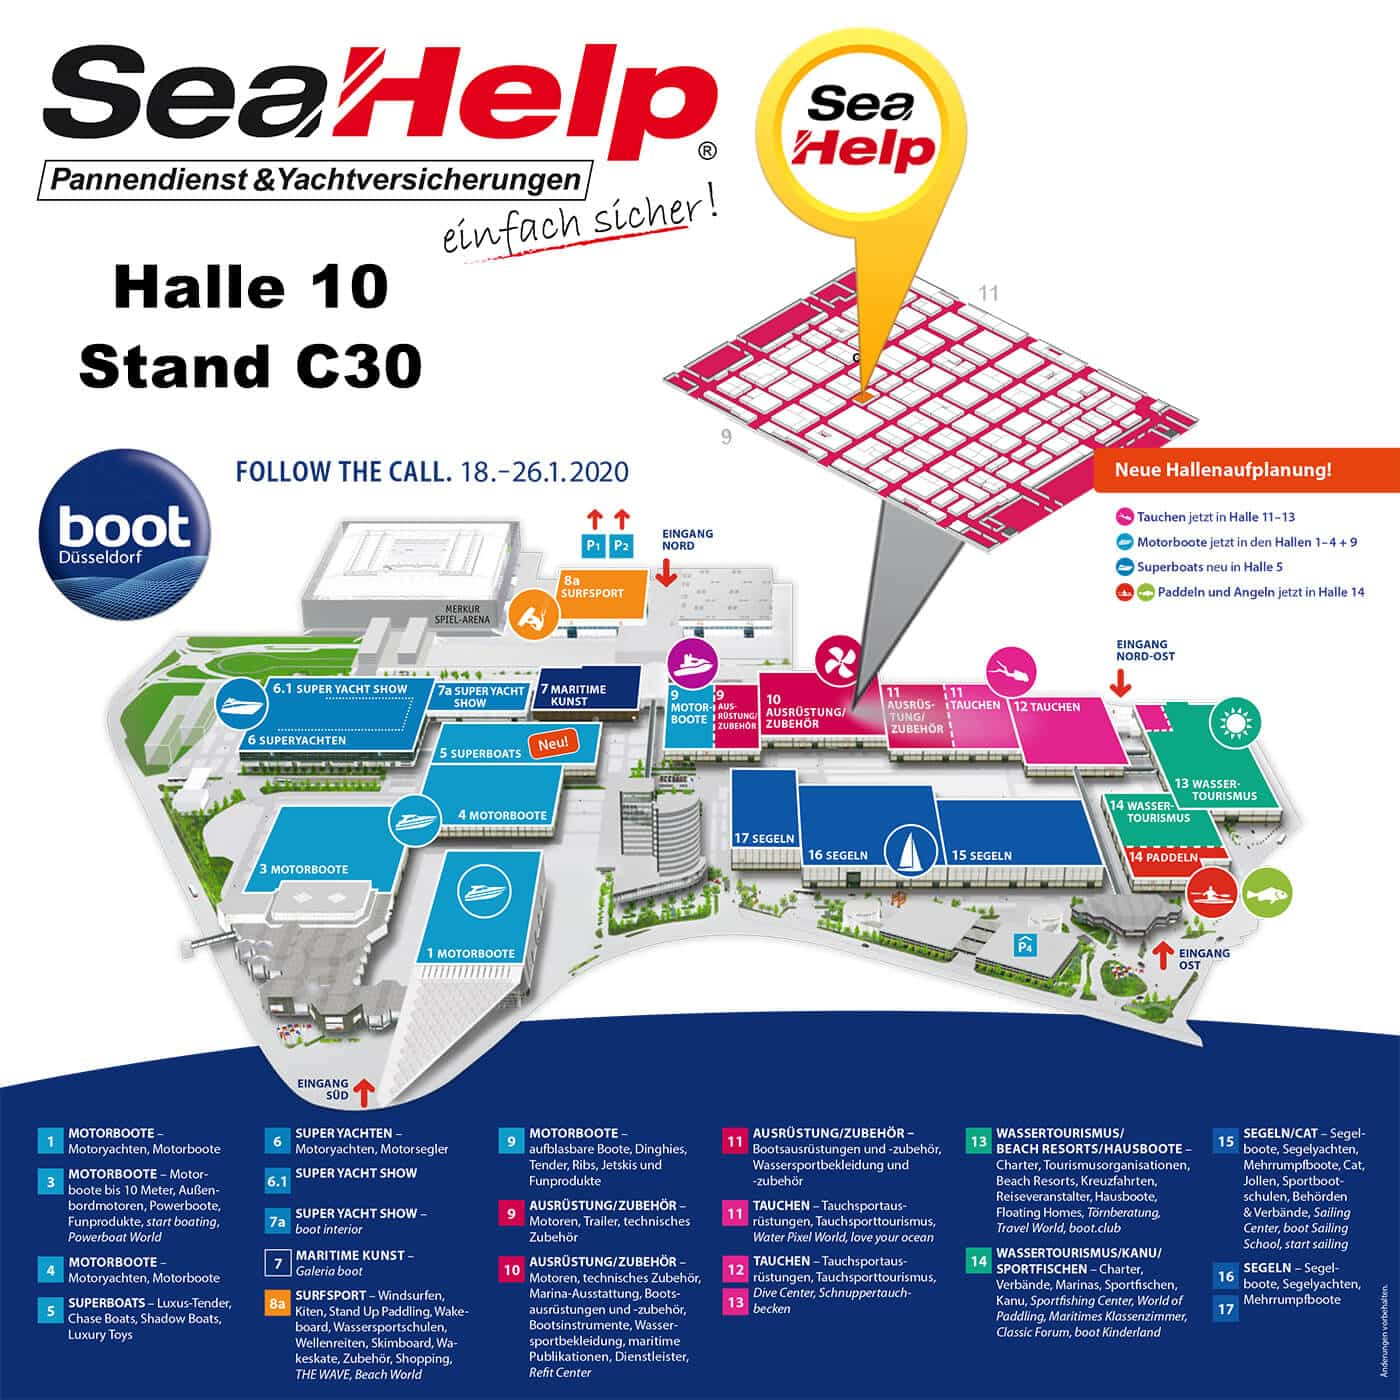 SeaHelp at the boot Düsseldorf 2020 Hall 10 Stand C30